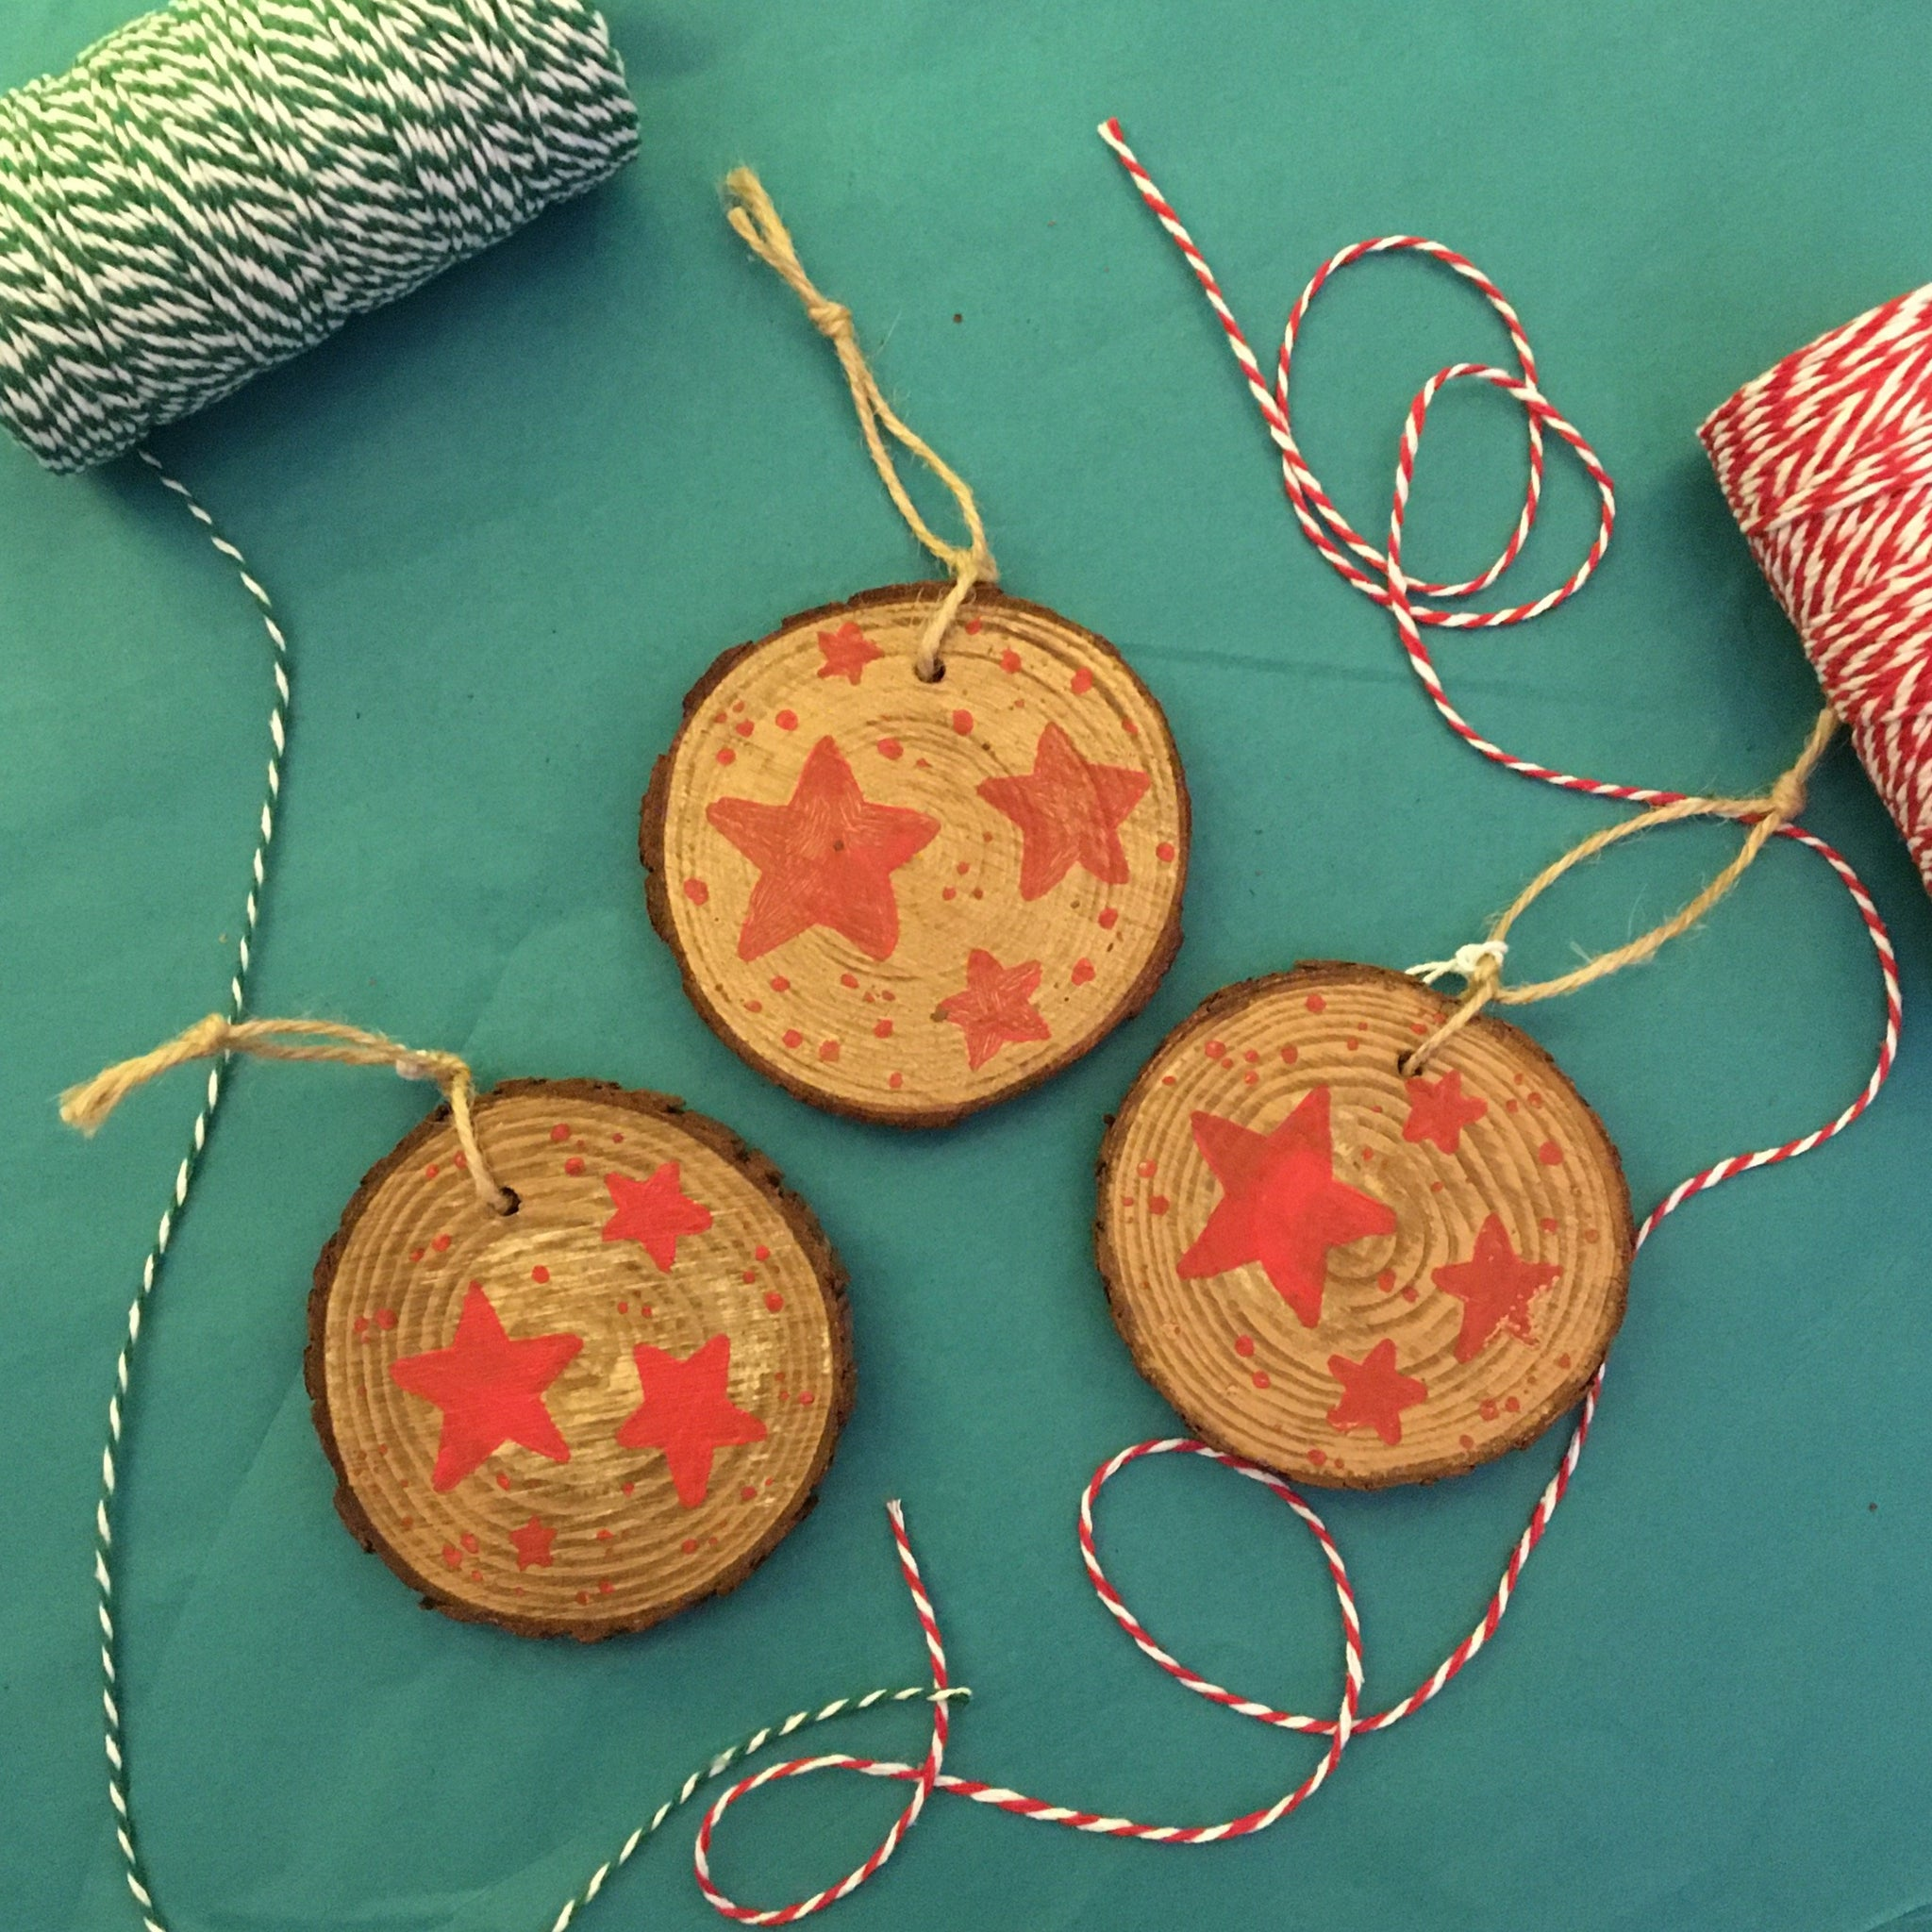 3 Wooden Slice Christmas Tree Decorations - Red Stars